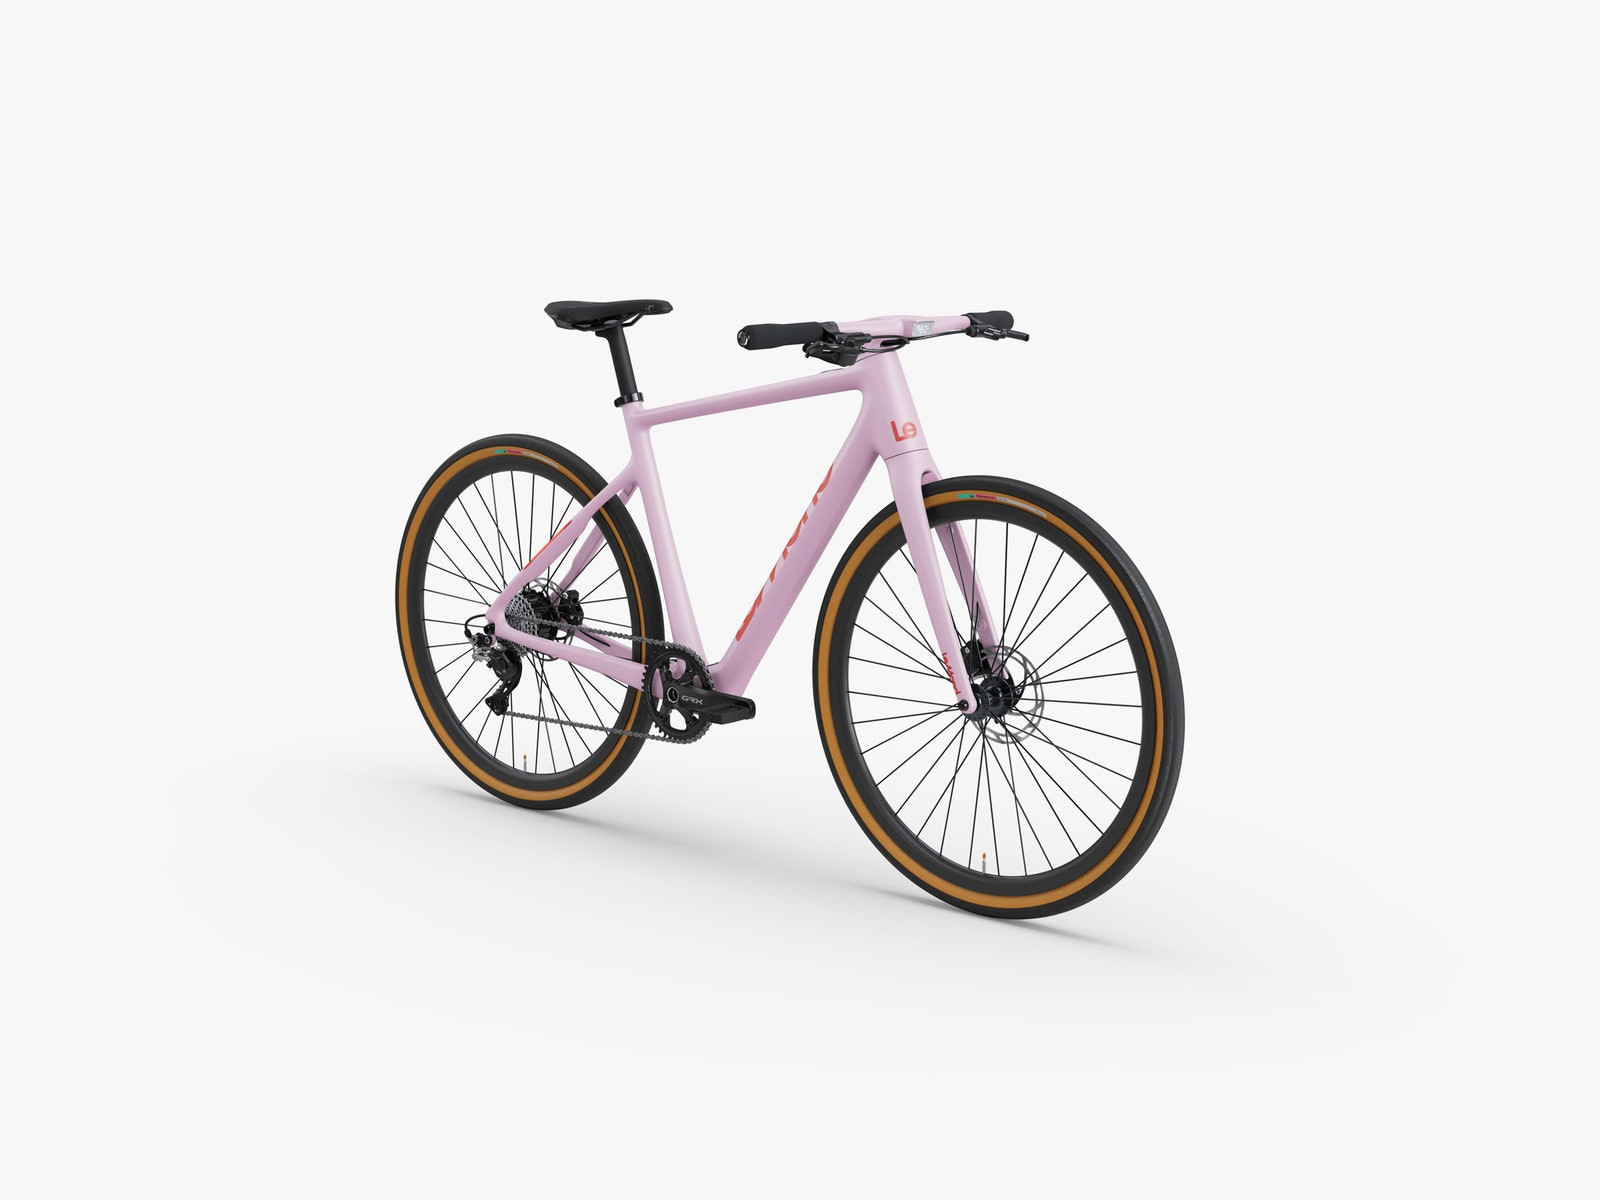 Read more about the article LeMond Prolog Review: All-Carbon-Fiber Electric Bicycle